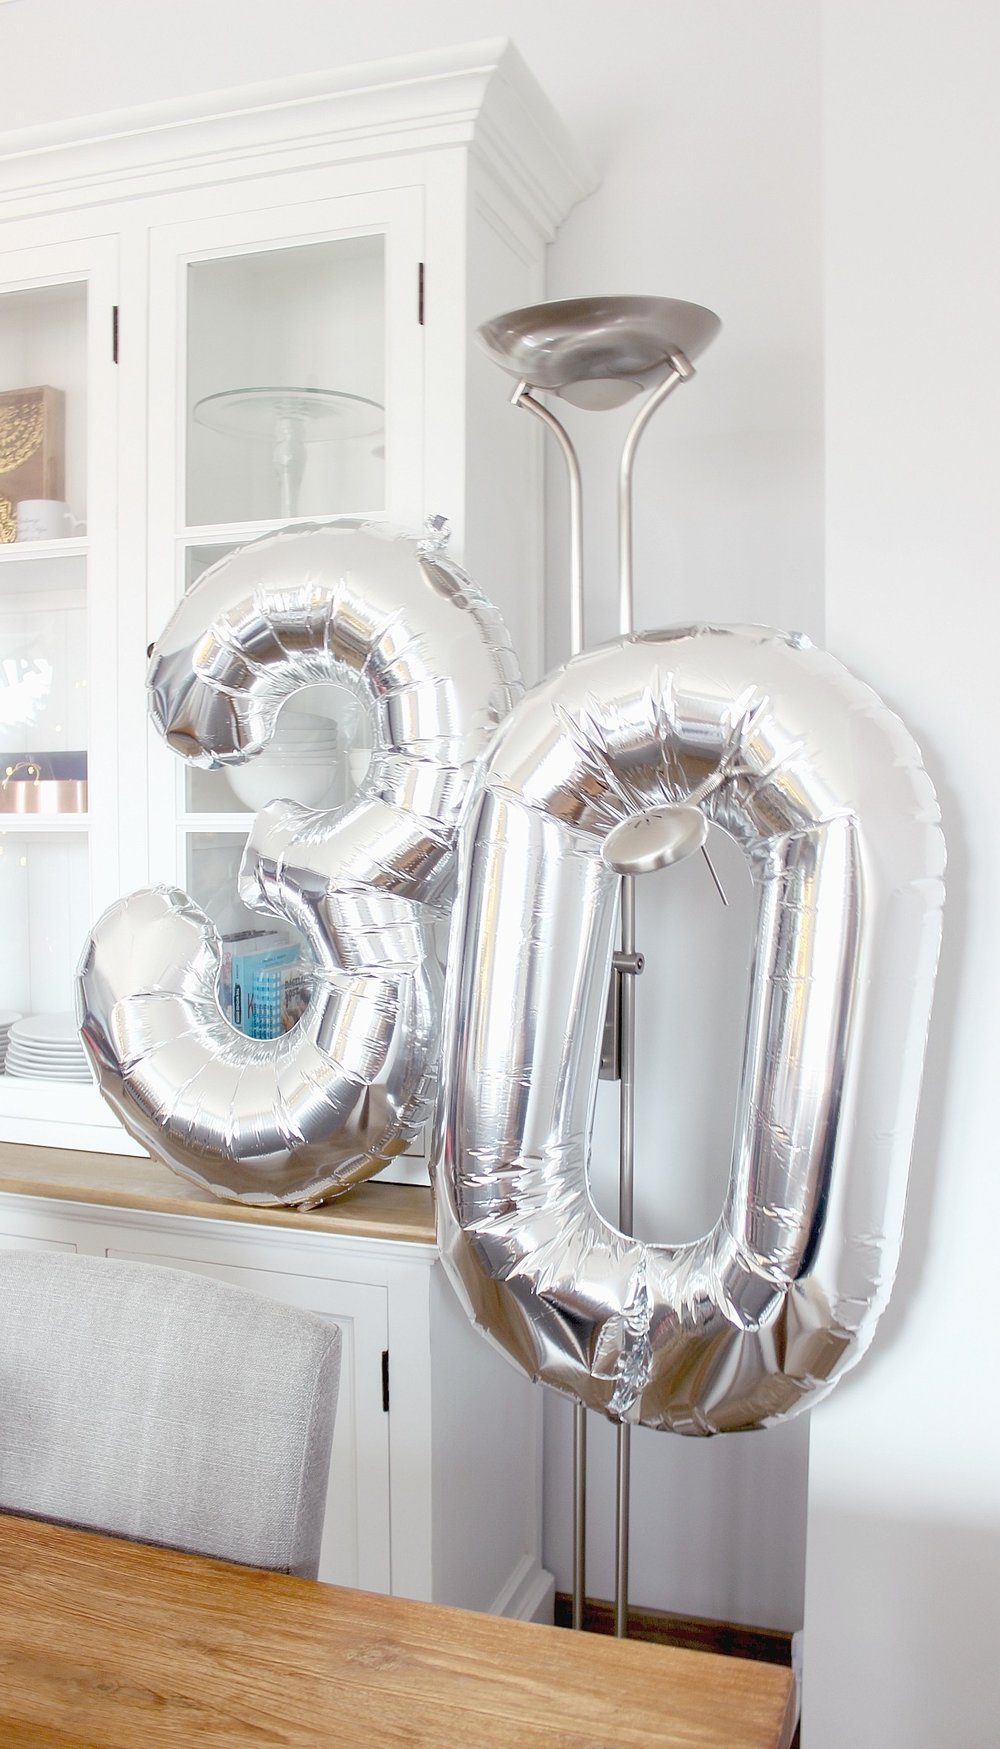 30 before 30: bucket list - ☐ 1.Eat a different fruit each day for a month ☐ 2. Attend a Masquerade Ball ☐ 3. Run a 10k race ☐ 4. Get hypnotized ☐ 5. Play paintball with friends ☐ 6. Ride a horse in the countryside or on the beach ☐ 7. Make a video and upload it to YouTube ☐ 8. Eat vegan for a month ☐ 9. Go on a weekend trip with my other half without phones ☐ 10. Write one more song ☐ 11.Learn how to fight in a self defense course ☐ 12. Visit Paris ☐ 13. See an Opera ☐ 14. Volunteer for a project of Teachers Without Borders ☐ 15. Make a painting and hang it on the wall ☐ 16. Cut out sugar for a month ☐ 17. Shoot a gun at a gun range ☐ 18. Learn to cook 5 dishes from different countries ☐ 19. Try out pole dancing (hello body confidence!)☐ 20. Ride (on the back of) a motorcycle ☐ 21. Perform one more live show as a singer/songwriter ☐ 22. Visit New York ☐ 23.Become a blood donor ☐ 24. Drive a rally/race car on a race track ☐ 25. Get a pedicure ☐ 26. Go on a solo travel trip ☐ 27. Take a photography class  ☐ 28. See a ballet show  ☐ 29. Go on a spiritual retreat  ☐ 30. Get a (temporary) tattoo